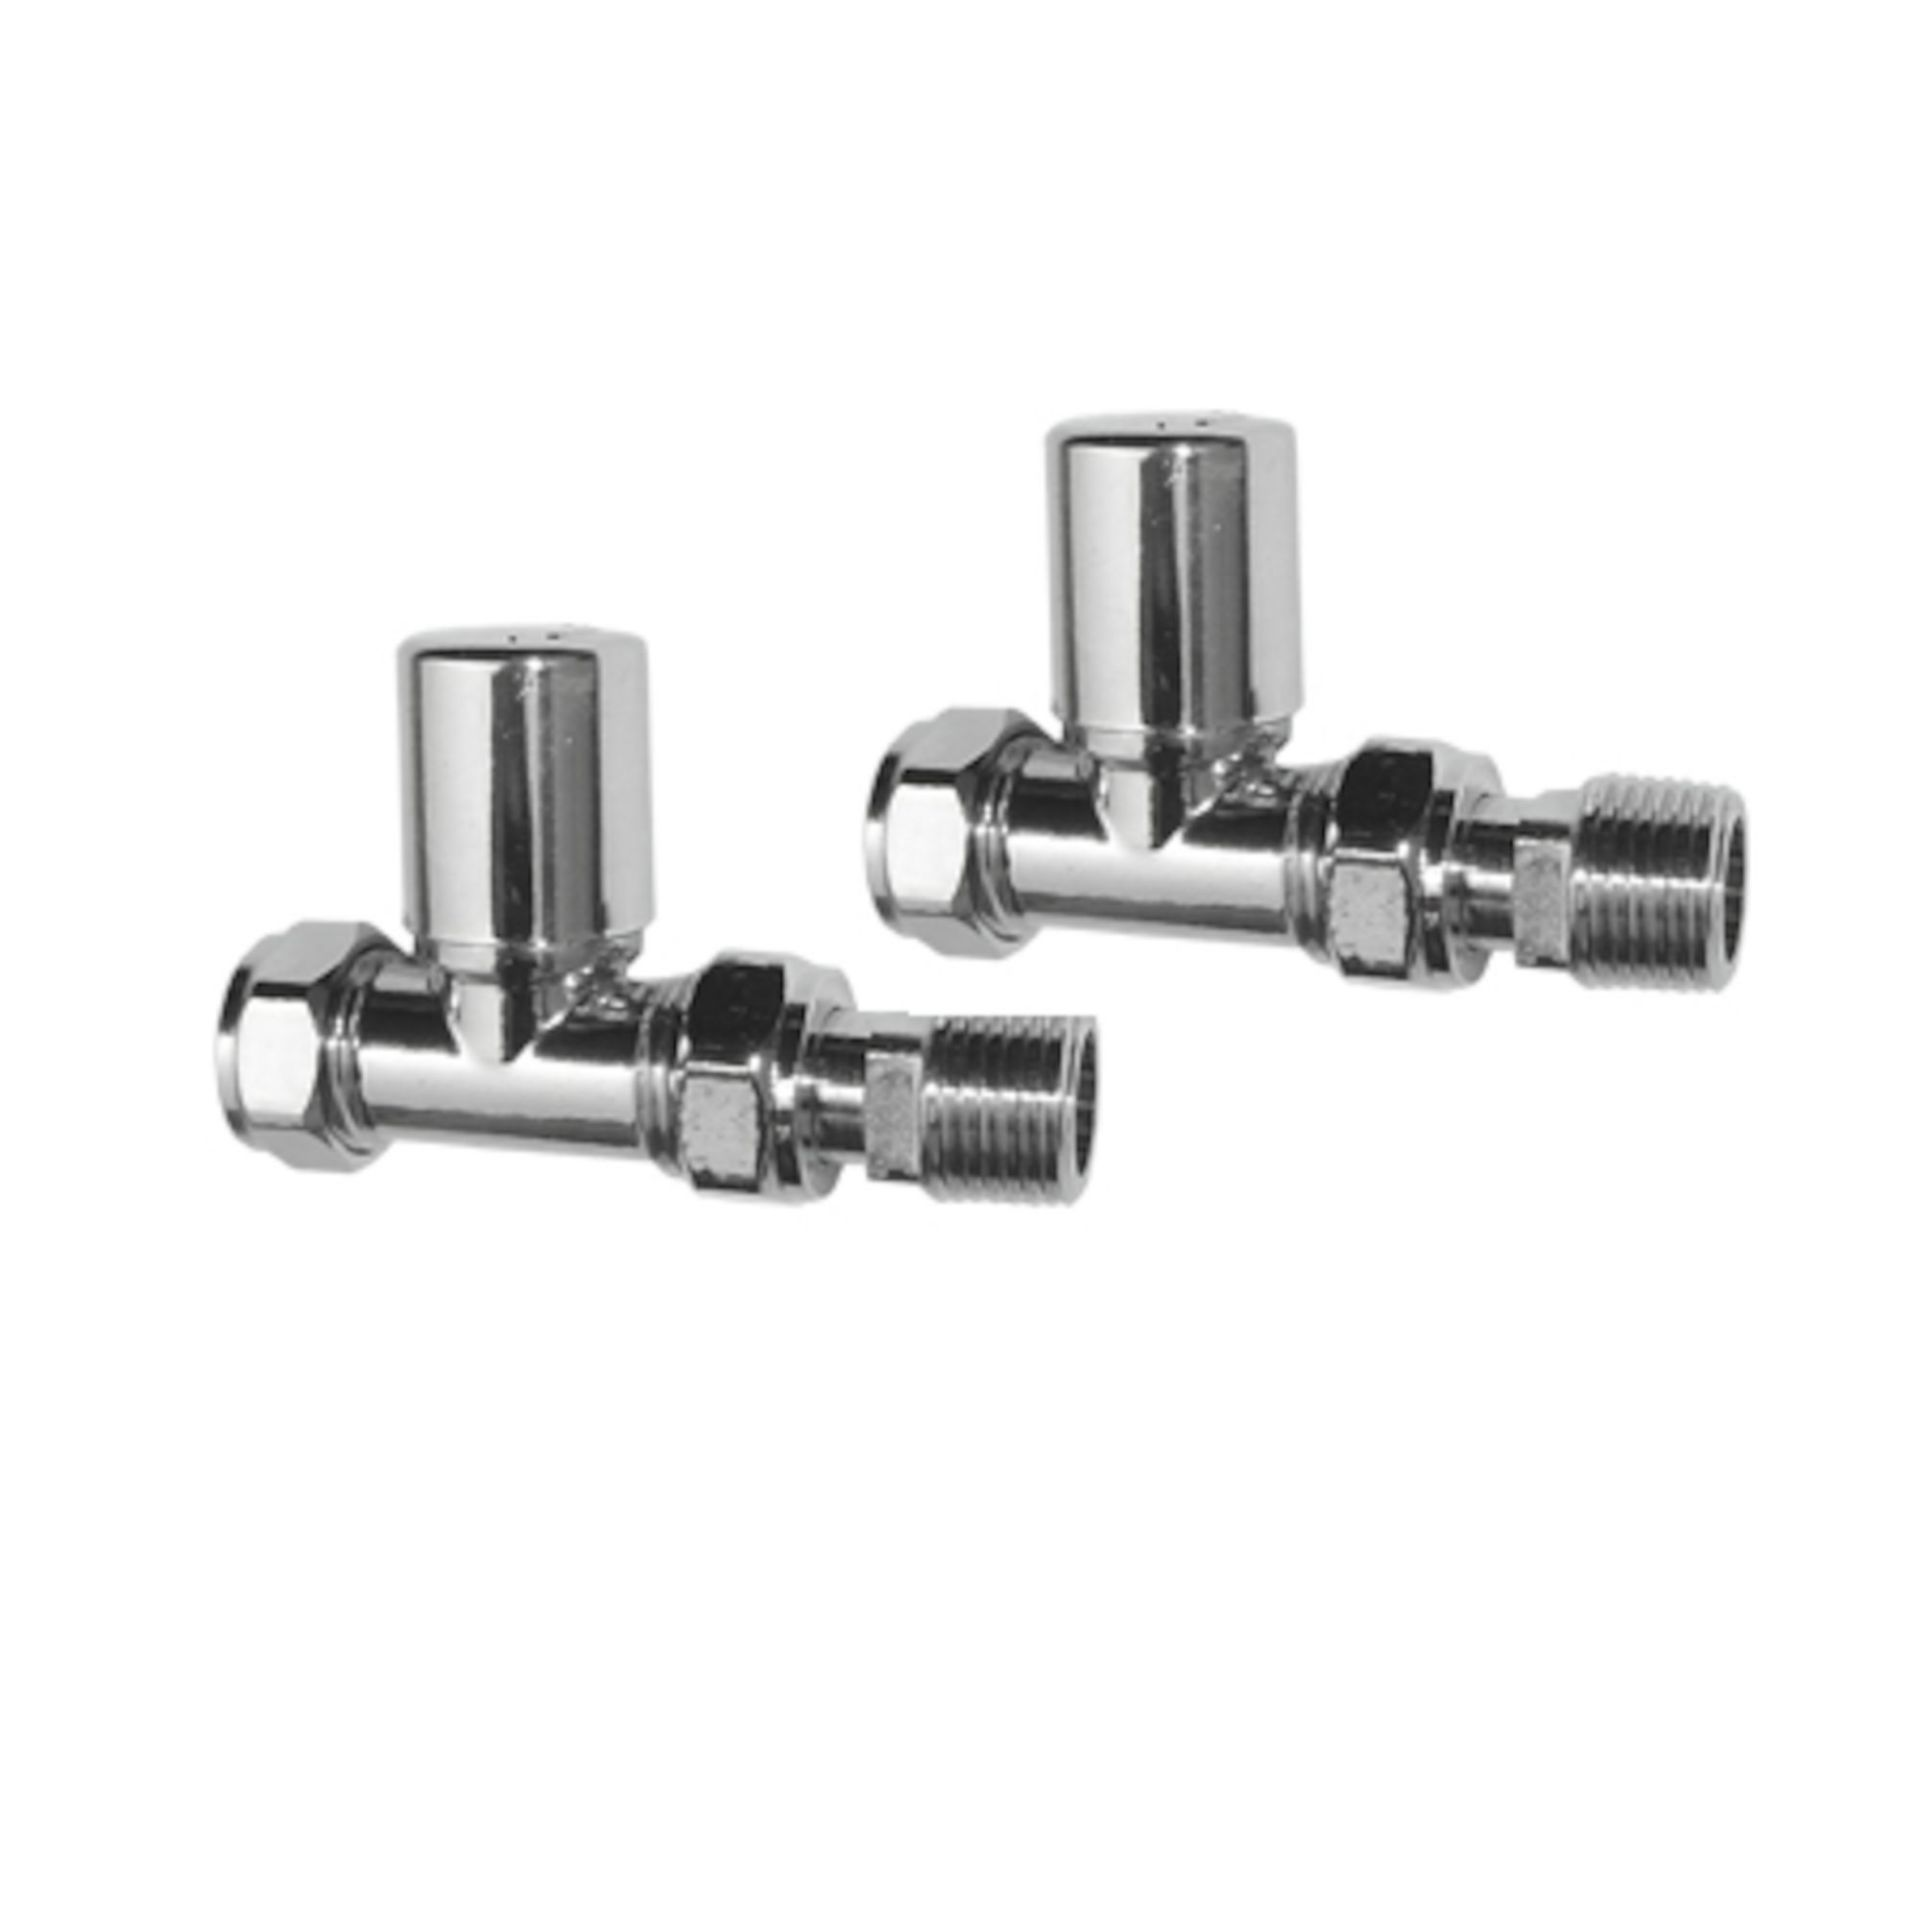 Lot 53 - (NF129) 15mm Standard Connection Angled Polished Chrome Radiator Valves Chrome Plated Solid Brass